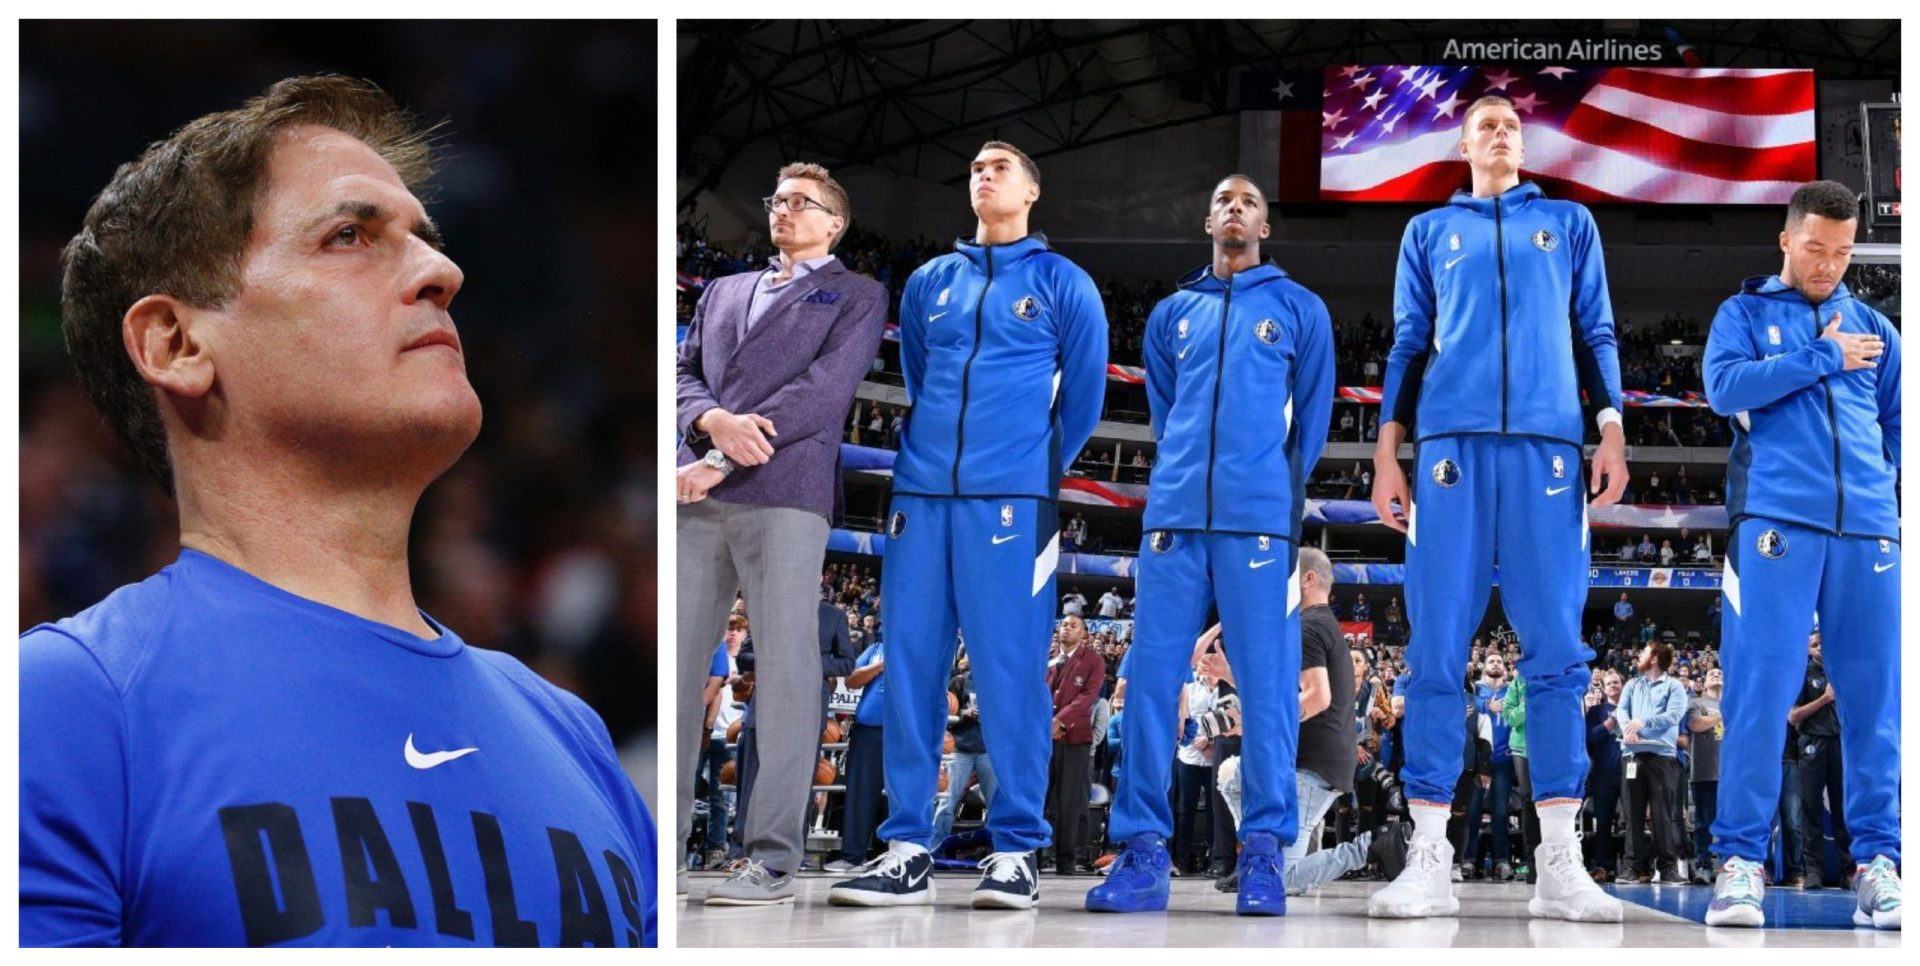 Dallas Mavericks owner Mark Cuban directs the team to ditch the national anthem - THE SPORTS ROOM